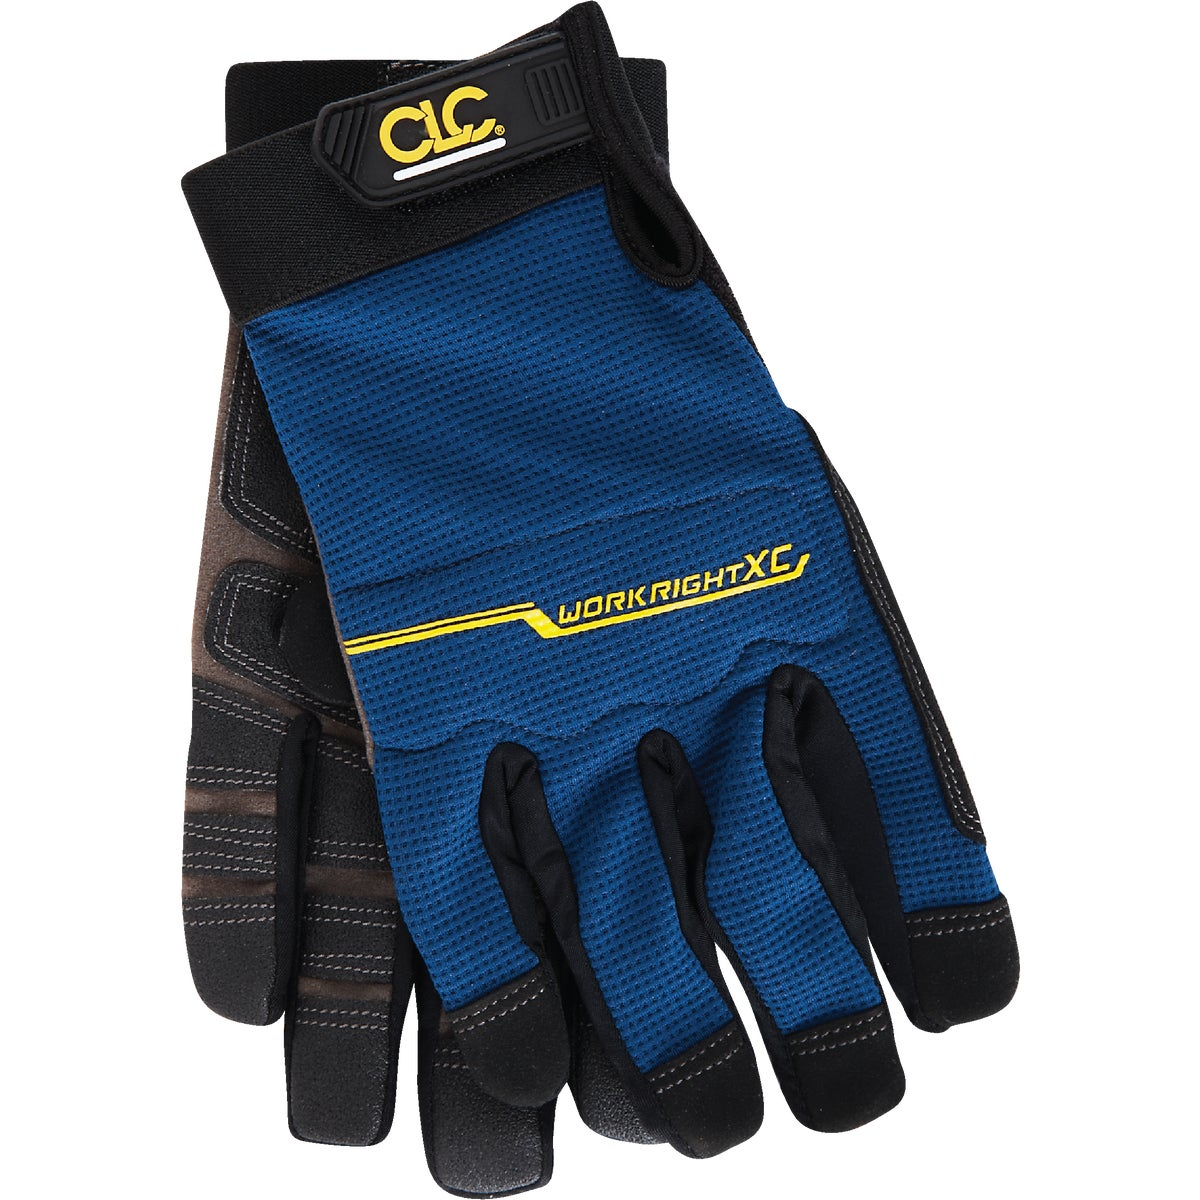 LRG WORKRIGHT XC GLOVE